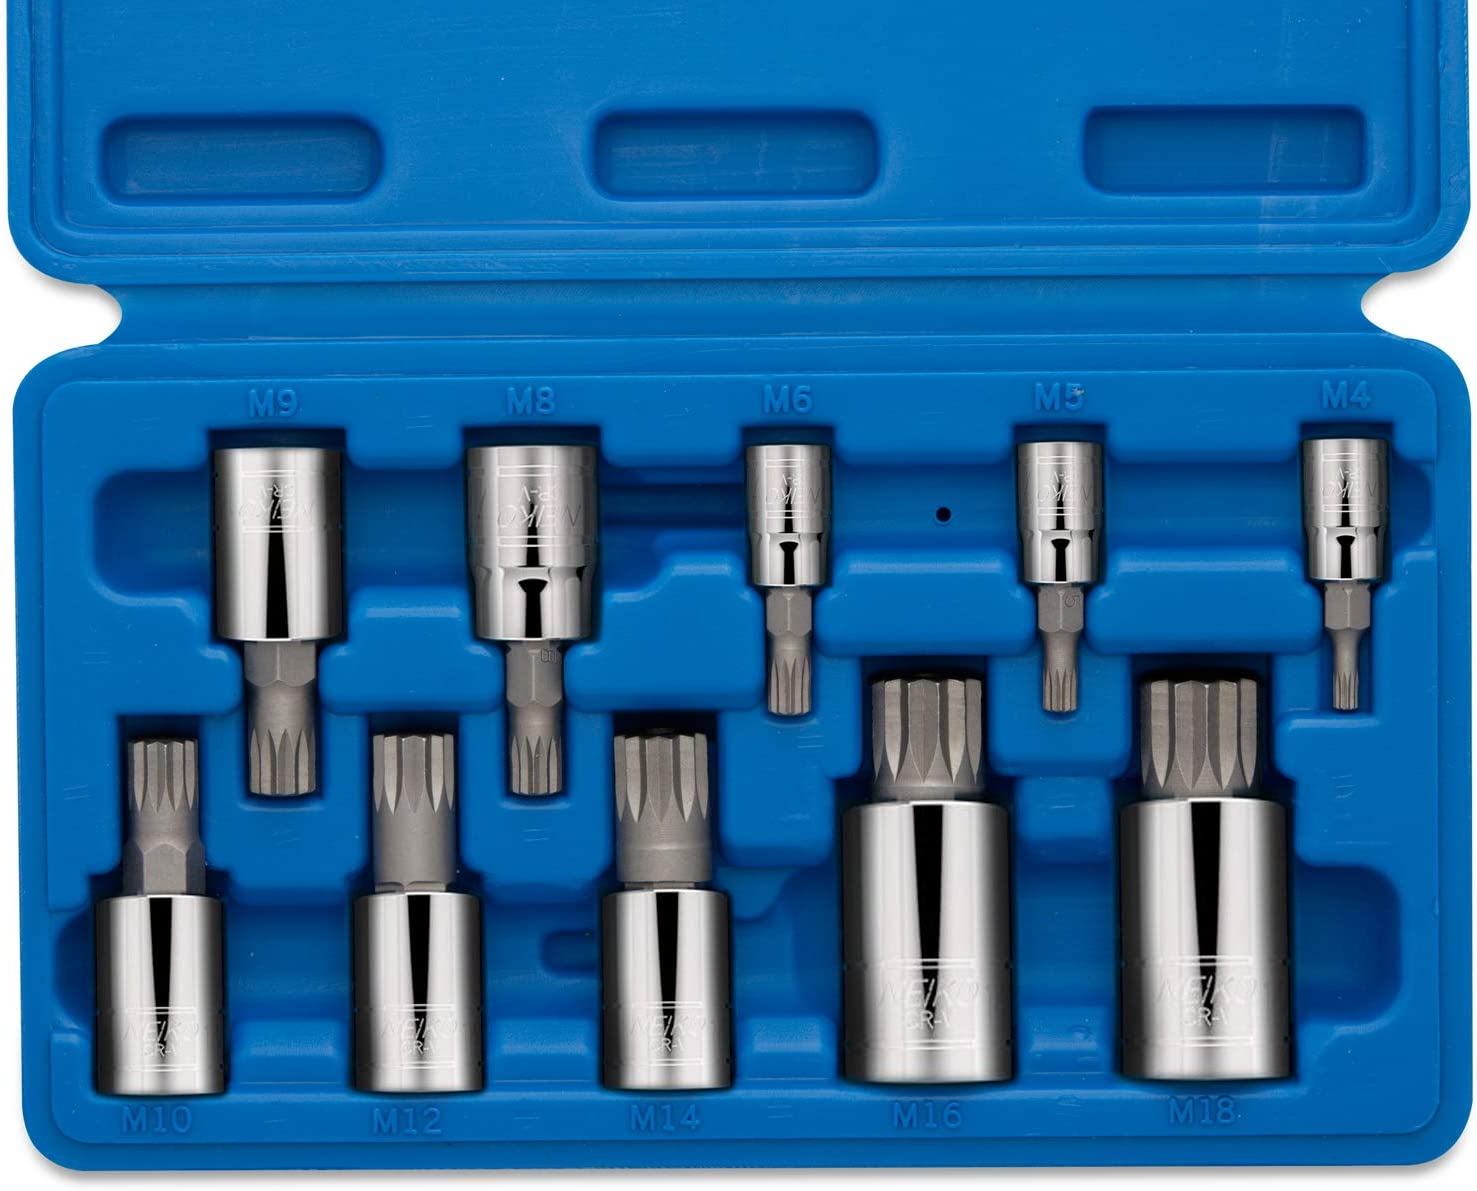 "FOR TORX HEX SPLINE BIT HOLDER 10MM X 1//2/"" DR TRIPLE SQUARE"